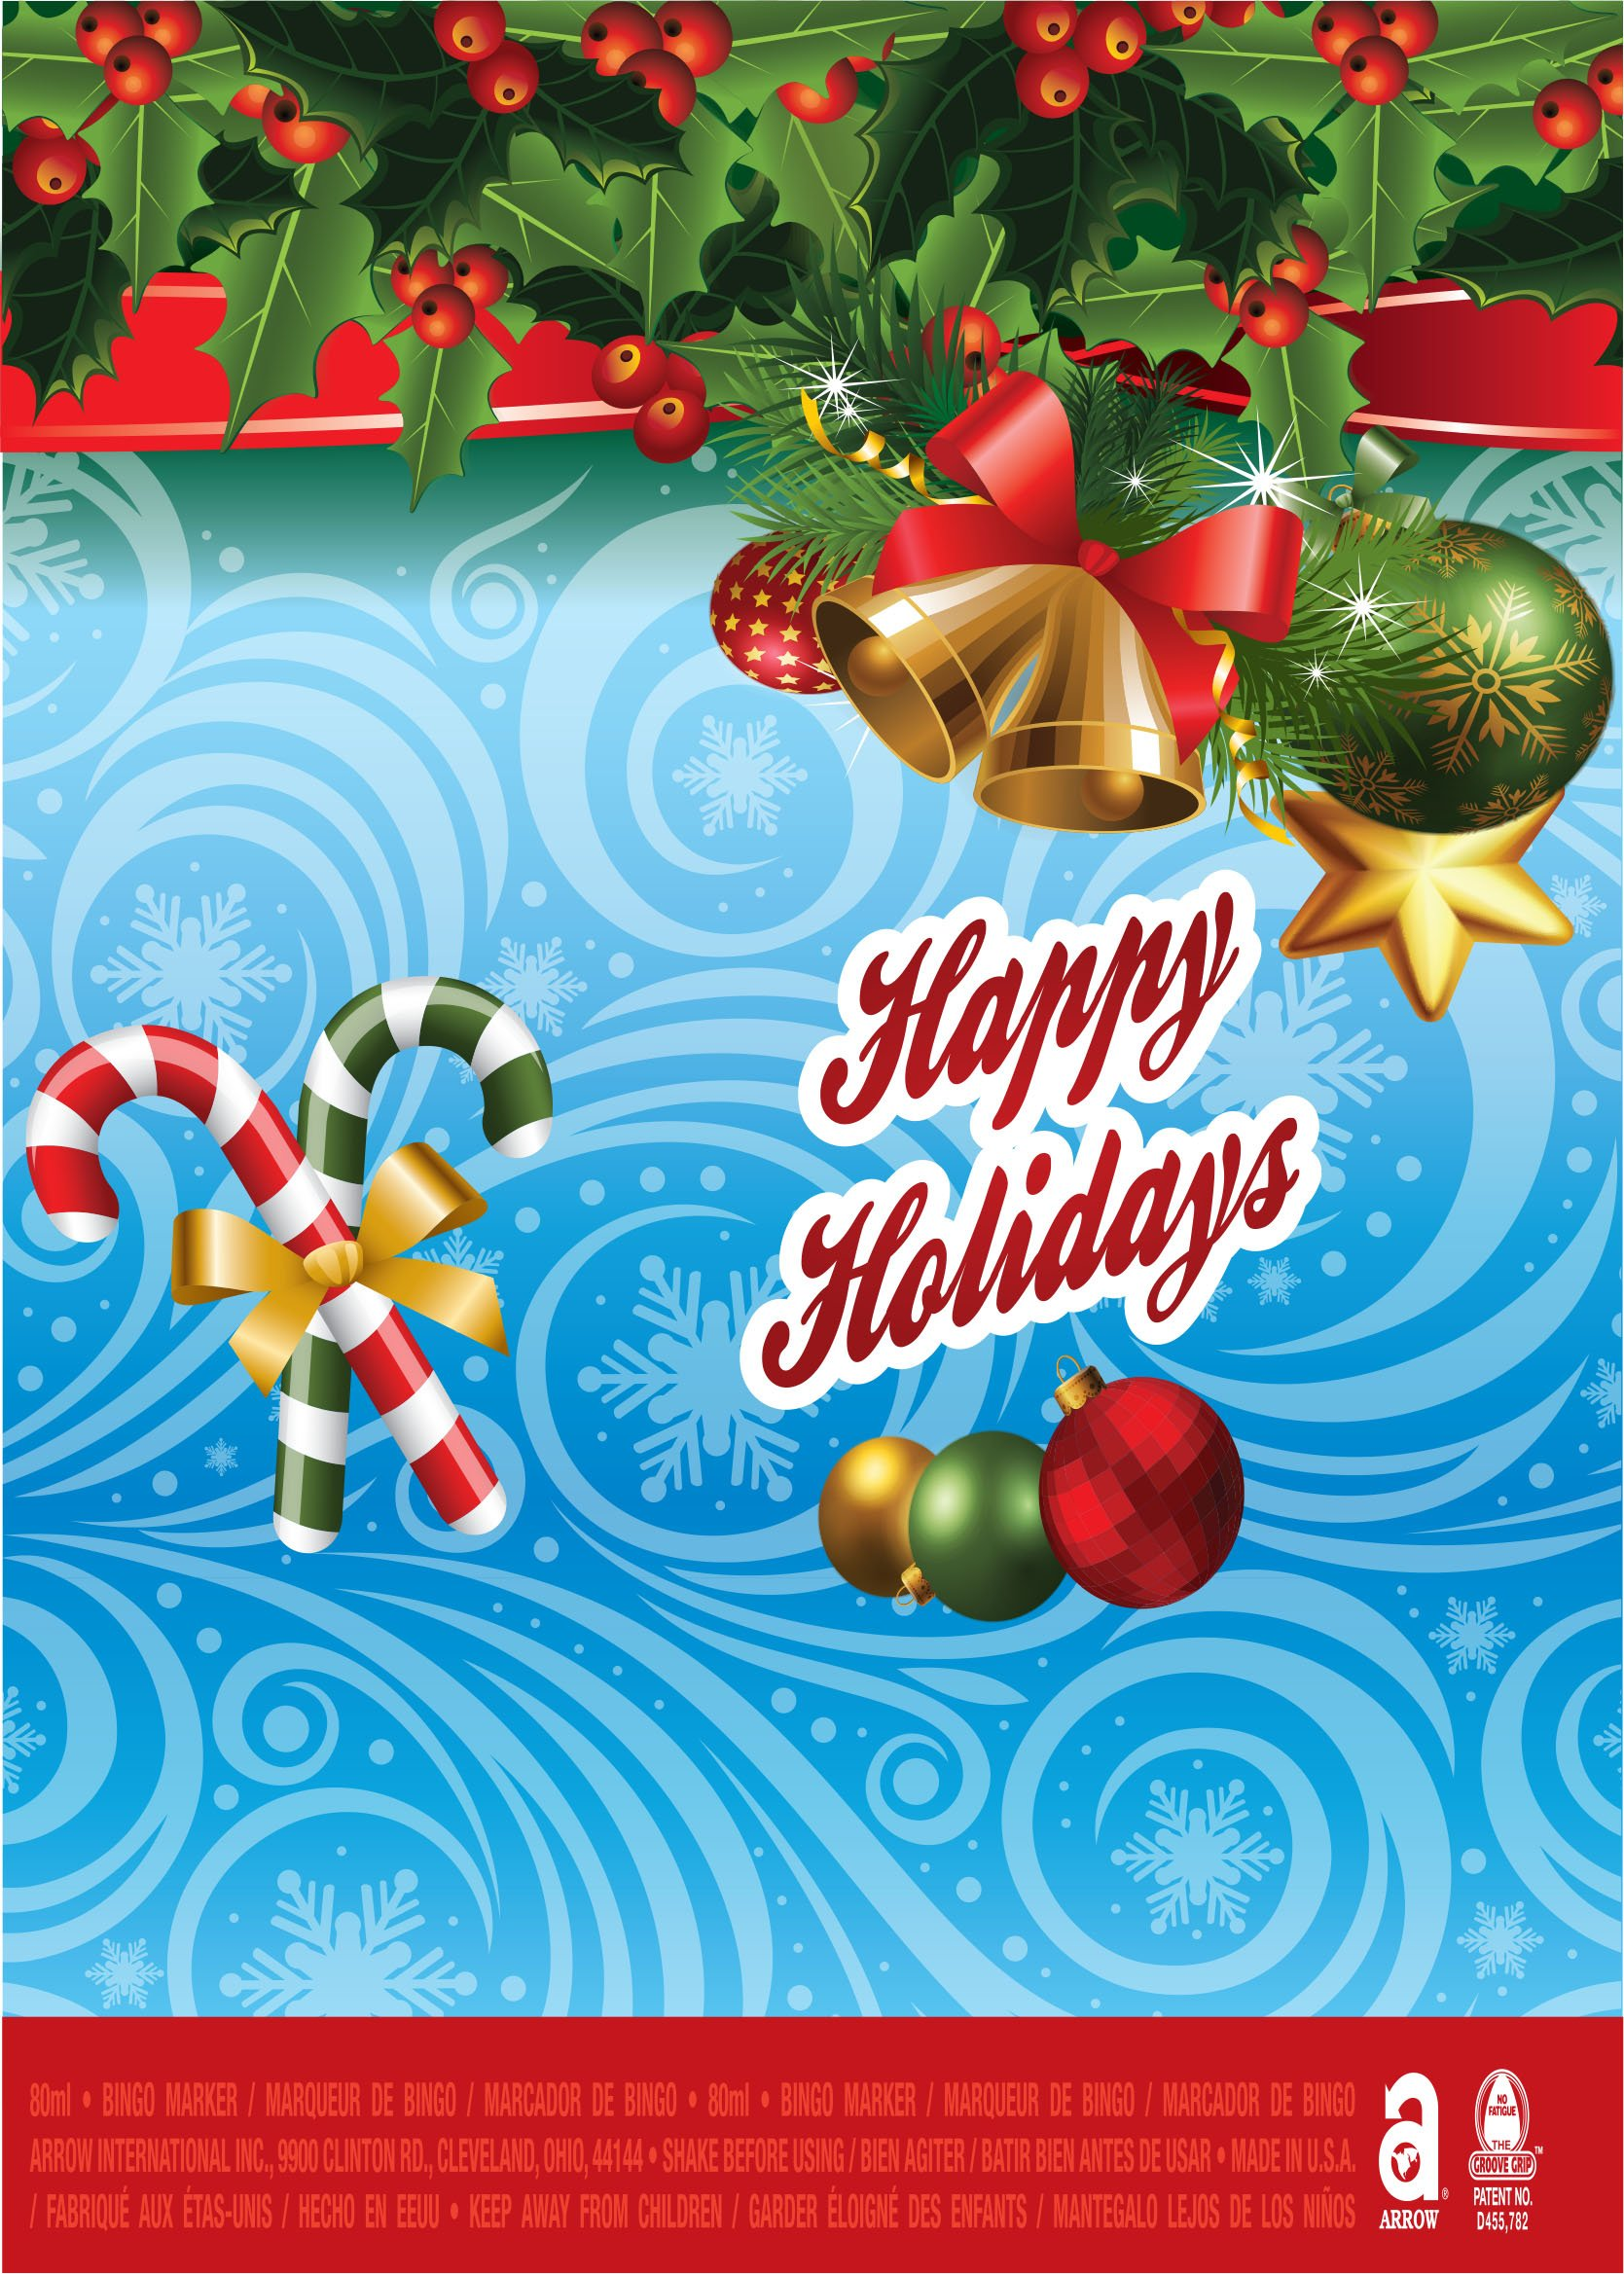 Happy Holidays / Candy Cane, Bells and Holly